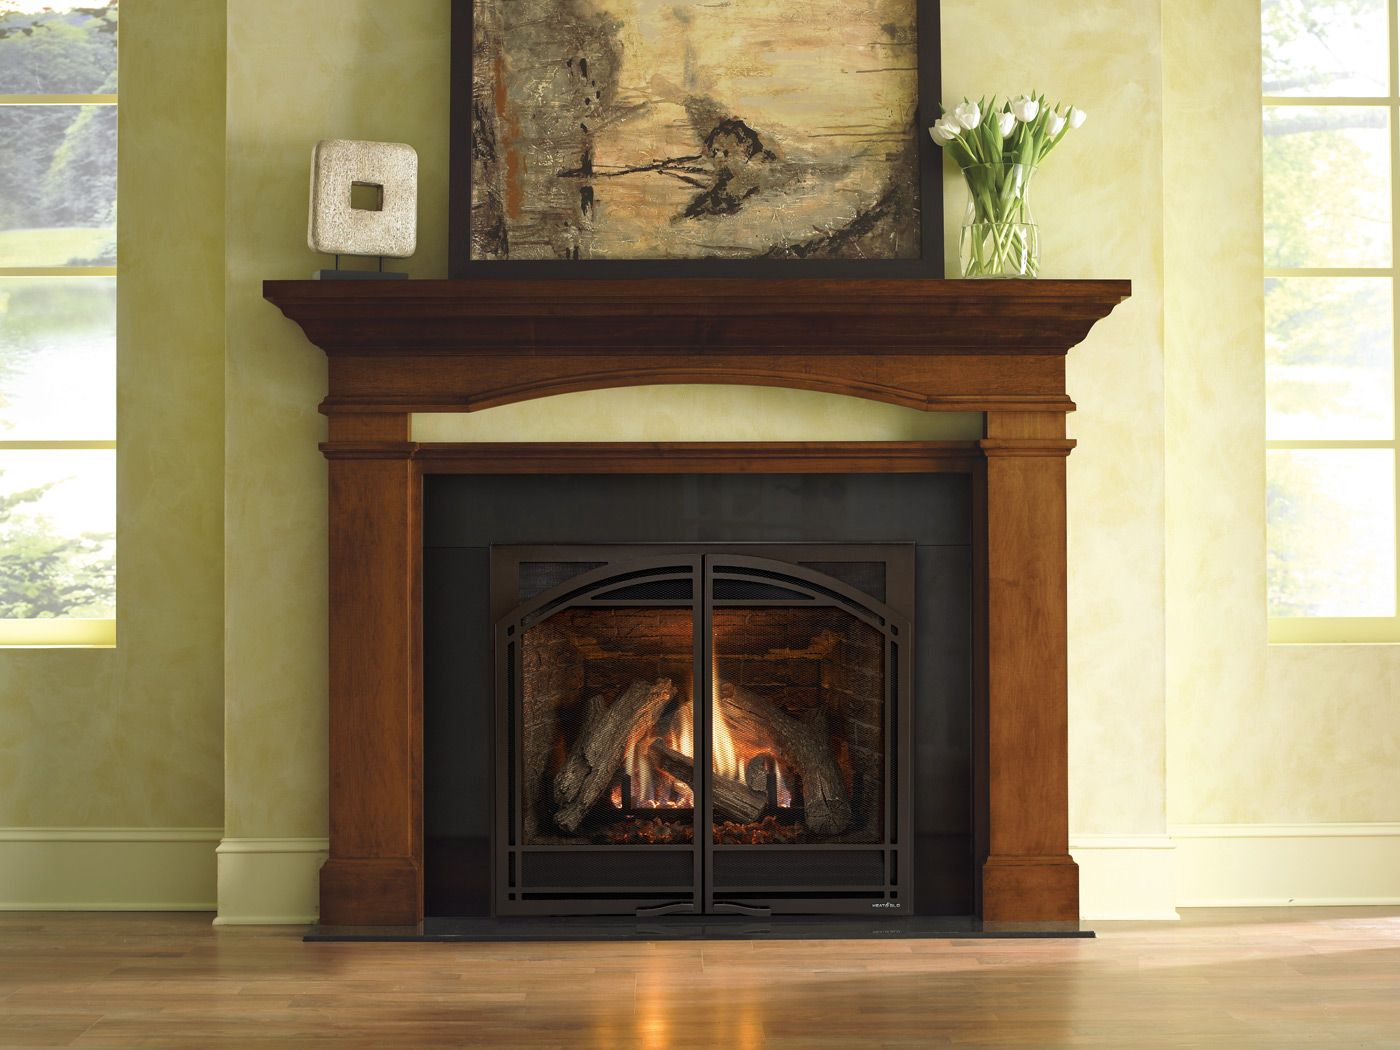 Heat and Glo 6000 Series Gas Fireplace  Acts of Kindness  Pinterest  Gas fireplaces and